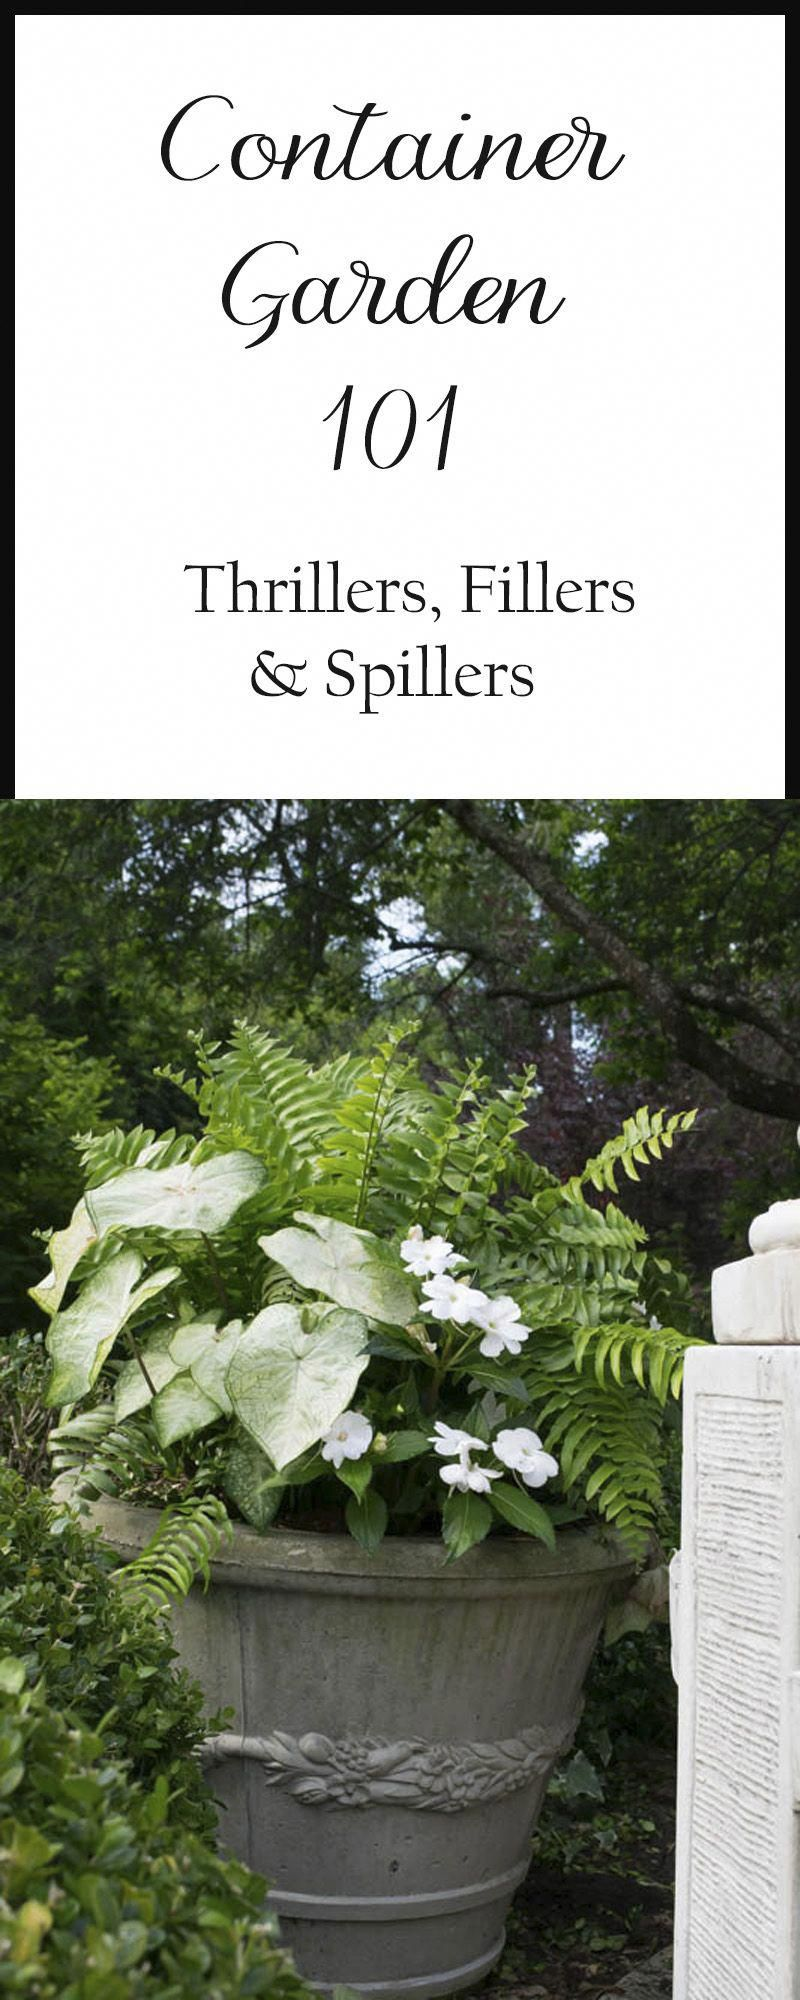 The basics of container gardening Thrillers Fillers and Spillers Lists of suggested plants and plant combination recipes and examples